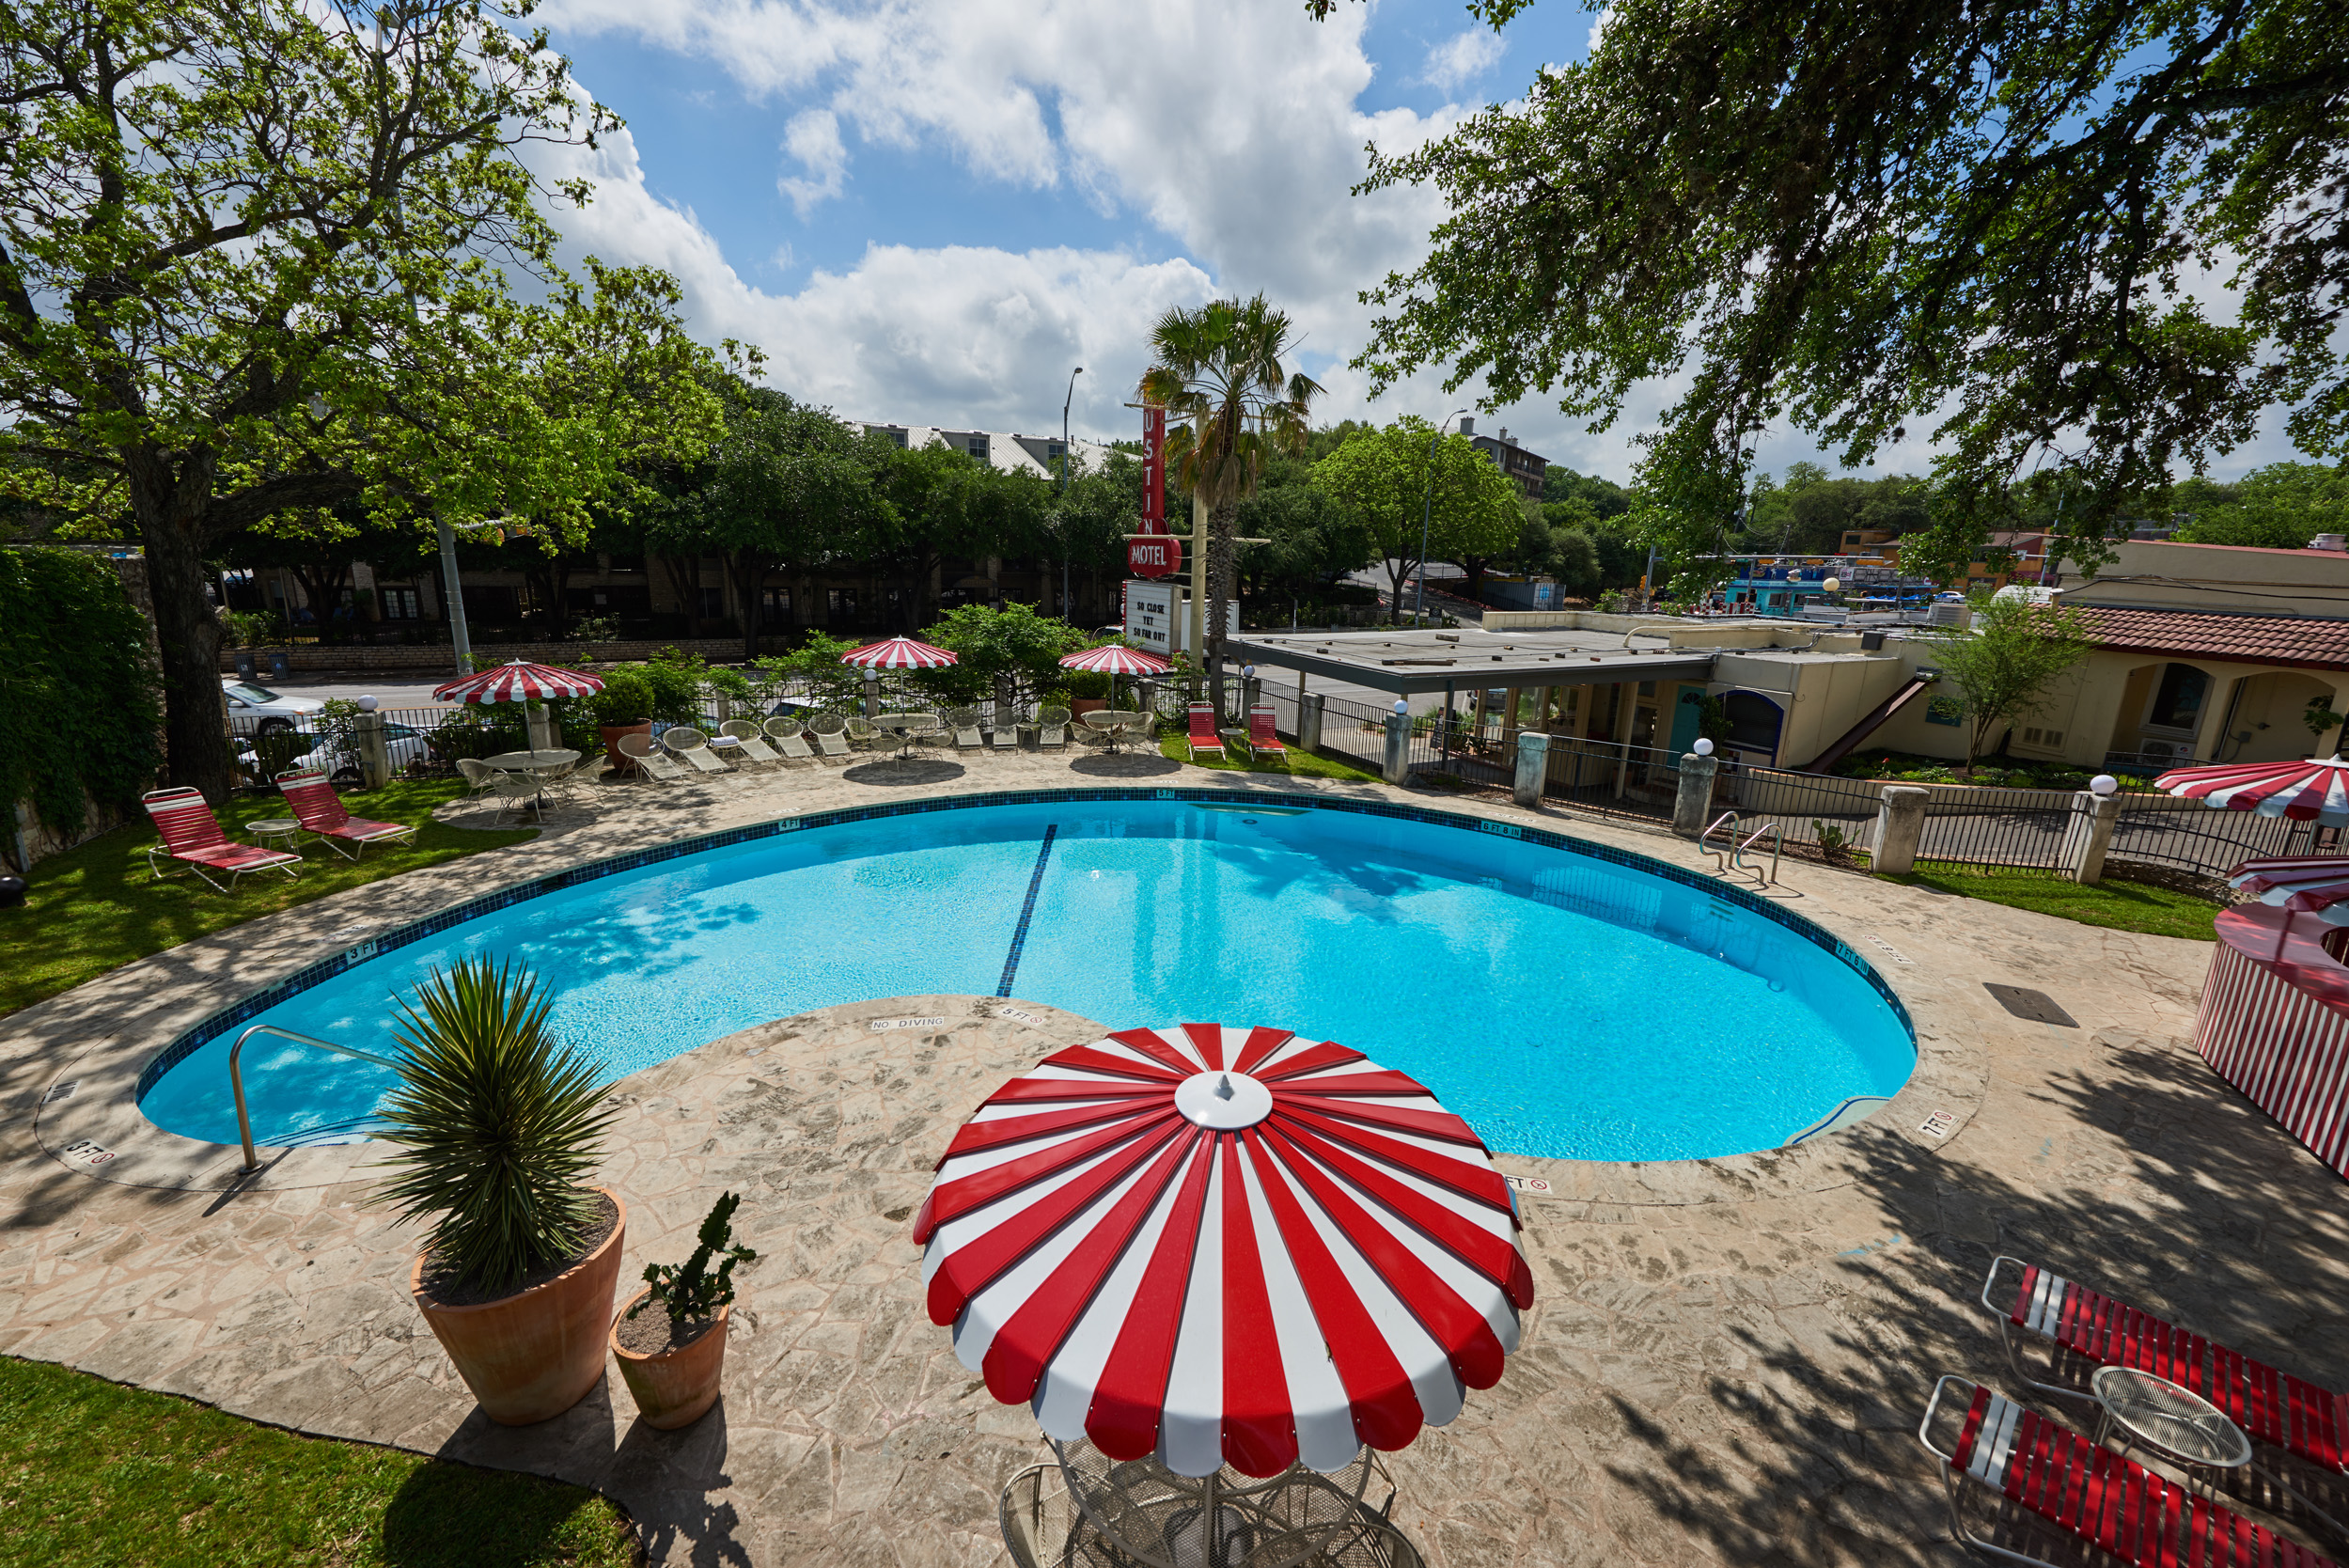 Outdoor pool area at the Austin Motel on a sunny day